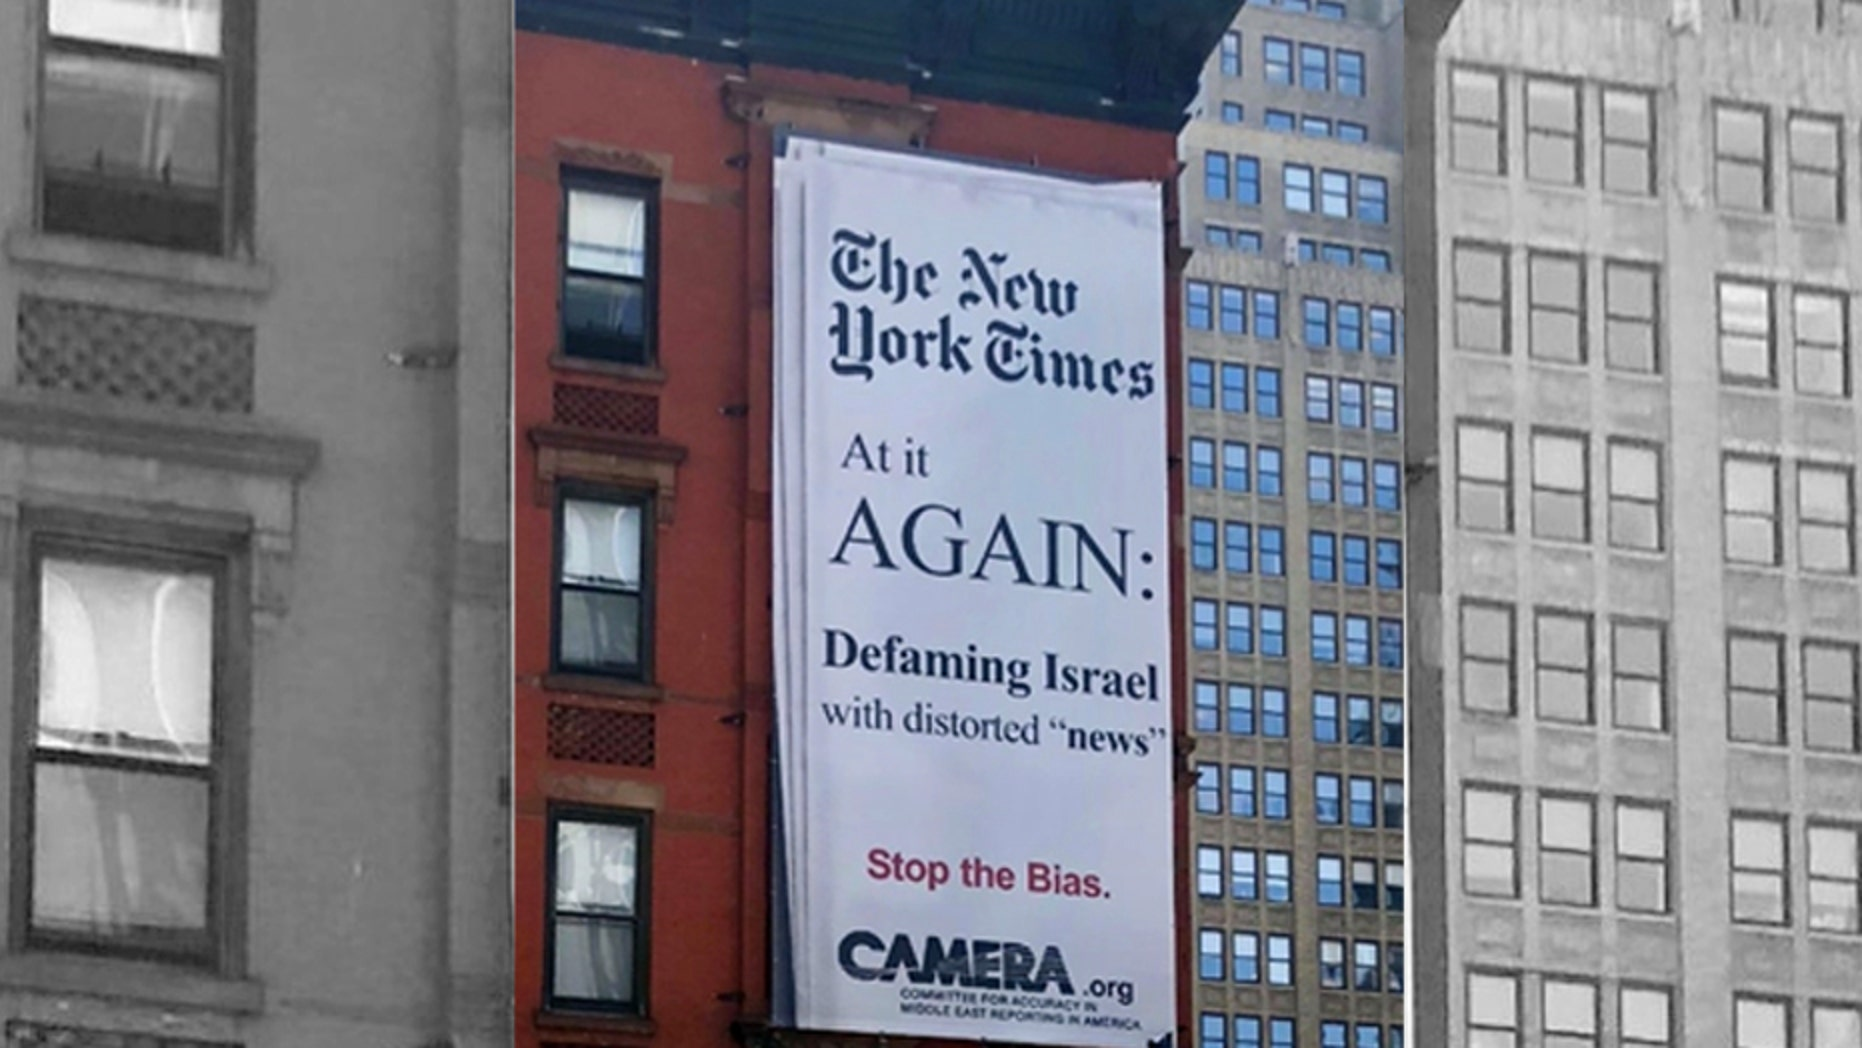 Media group CAMERA slams The New York Times for biased coverage against Israel.